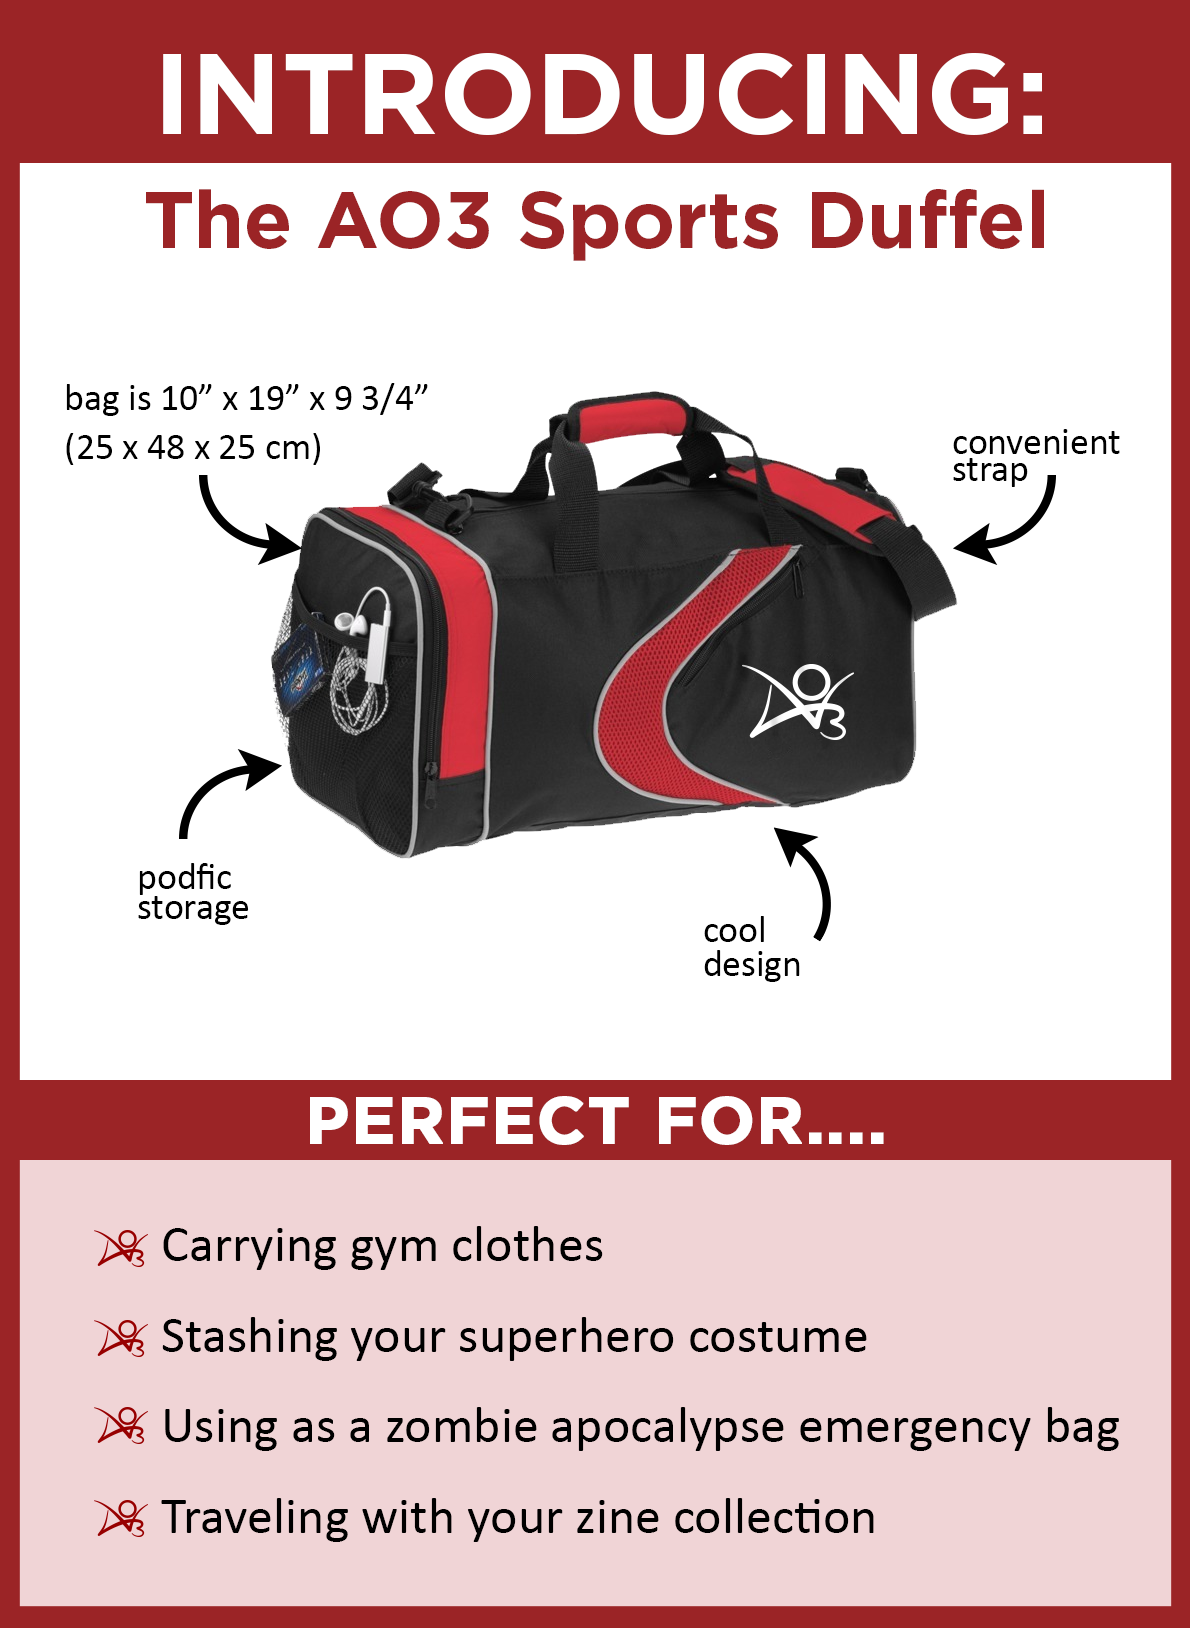 Introducing the AO3 Sports Duffel. The bag is black with red accents, with a red swoosh and a white AO3 logo on the side. It measures 25 x 48 x 25 centimeters. It has a convenient over-the-shoulder strap and a mesh side pocket ideal for podfic storage. It's perfect for carrying gym clothes, stashing your superhero costume, use as a zombie apocalypse bug-out bag, and traveling with your zine collection.